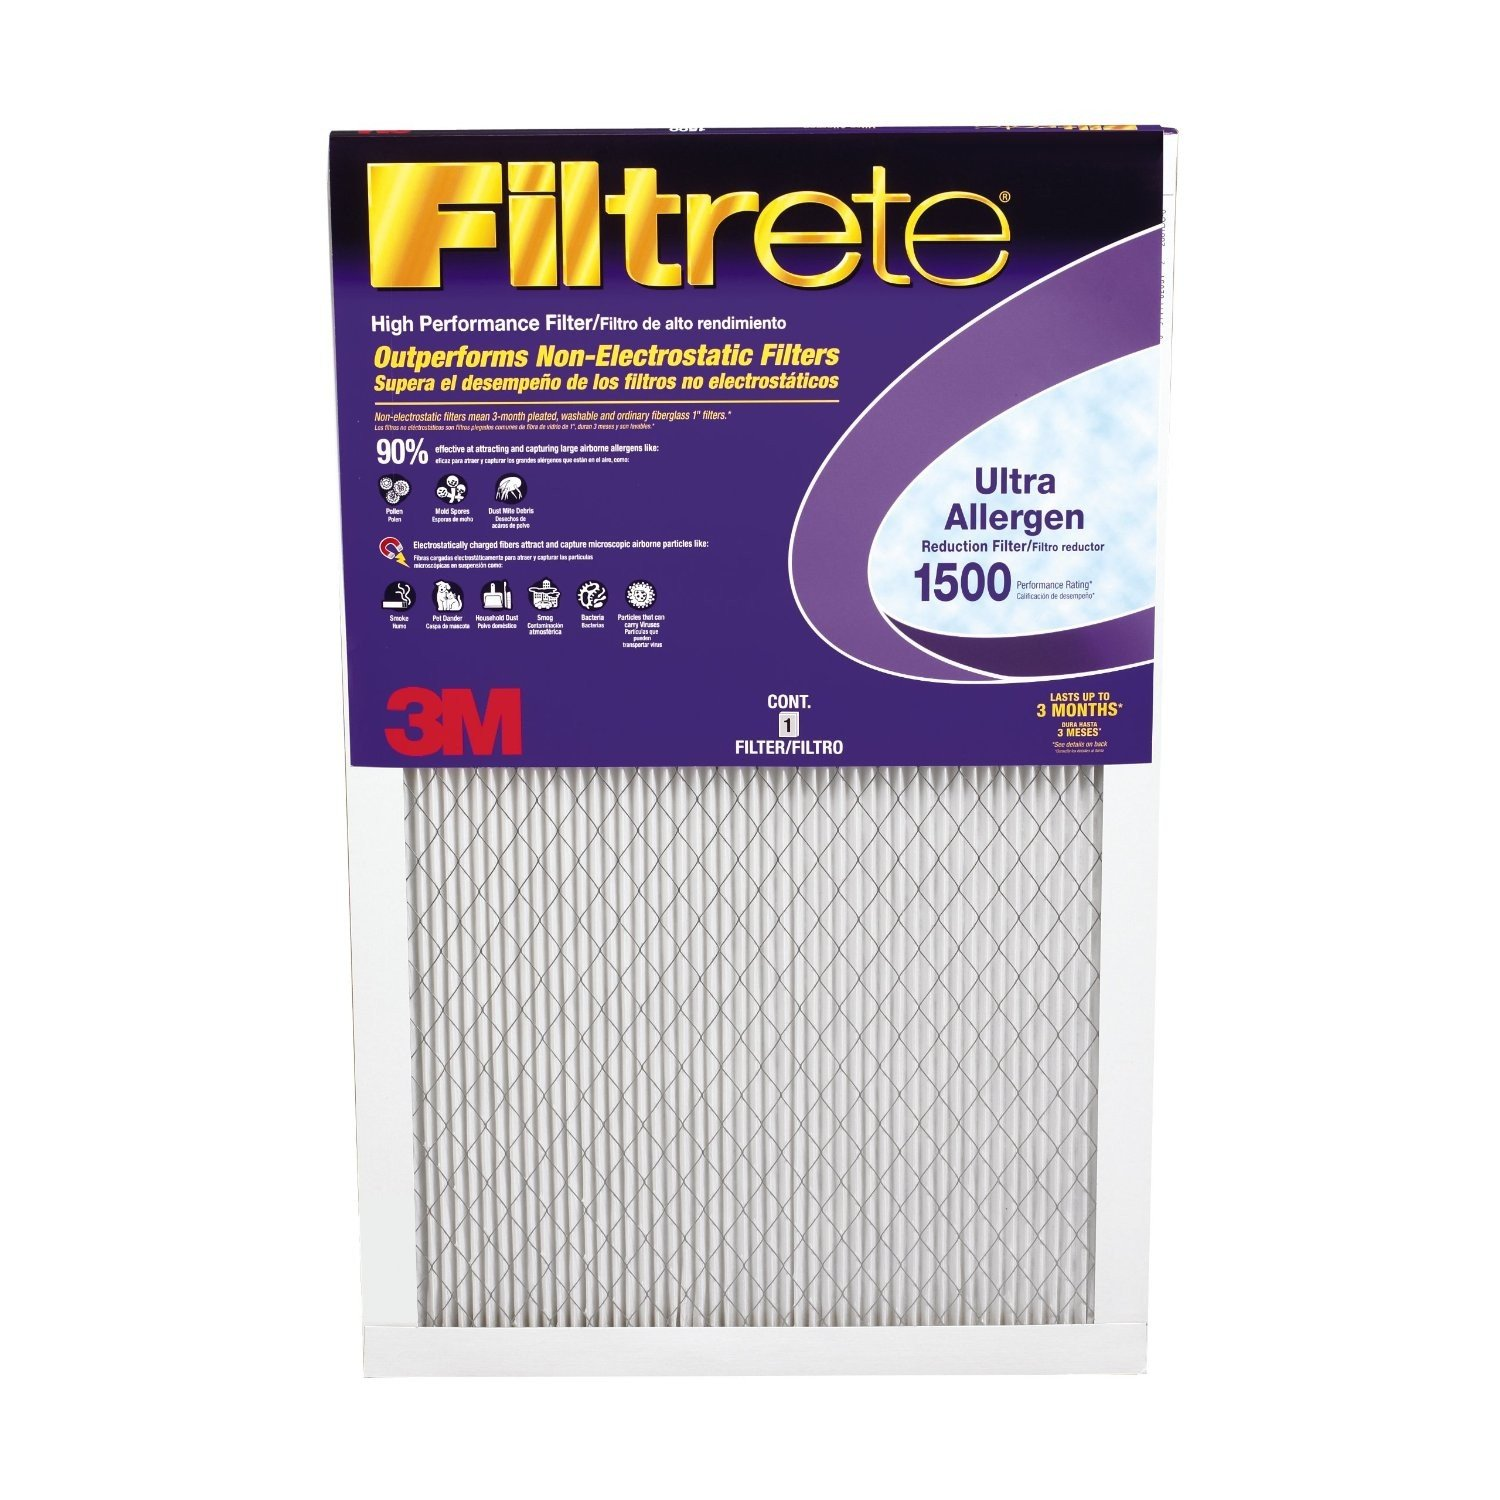 3M Filtrete 1500 MPR ON HOLD Lot of 5 New Ultra Allergen Reduction Air Filter 12x20x1 Free Shipping